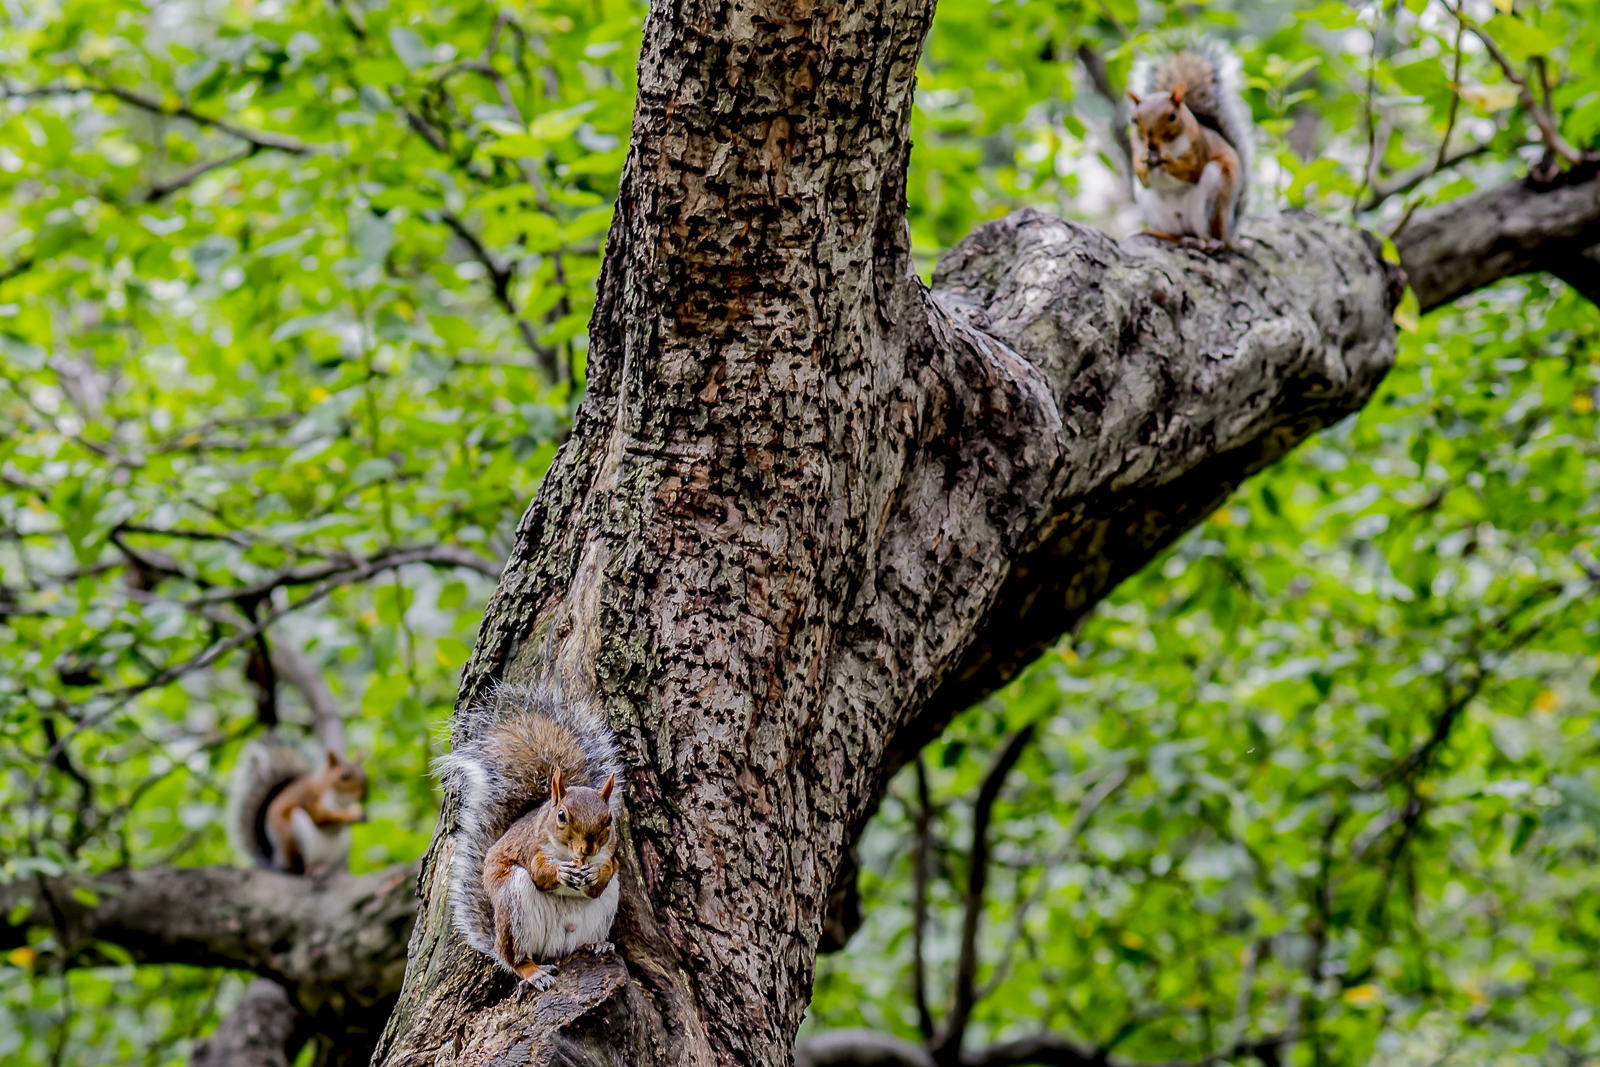 3 Squirrels eating nuts in Madison Park NY